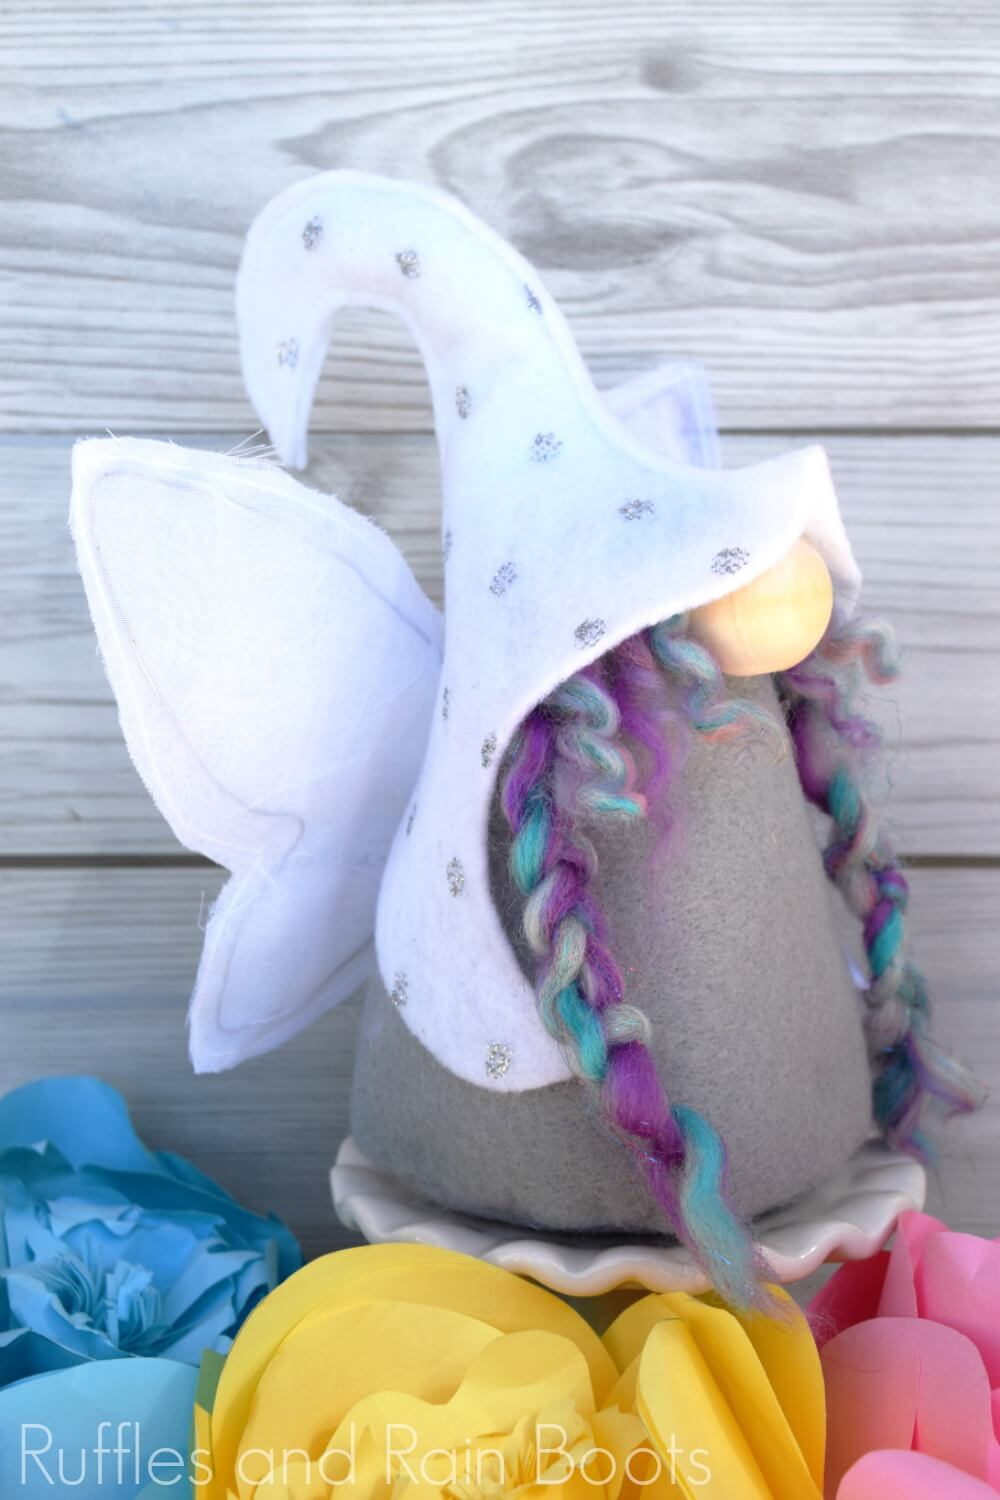 Elfin fairy gnome pattern with wings